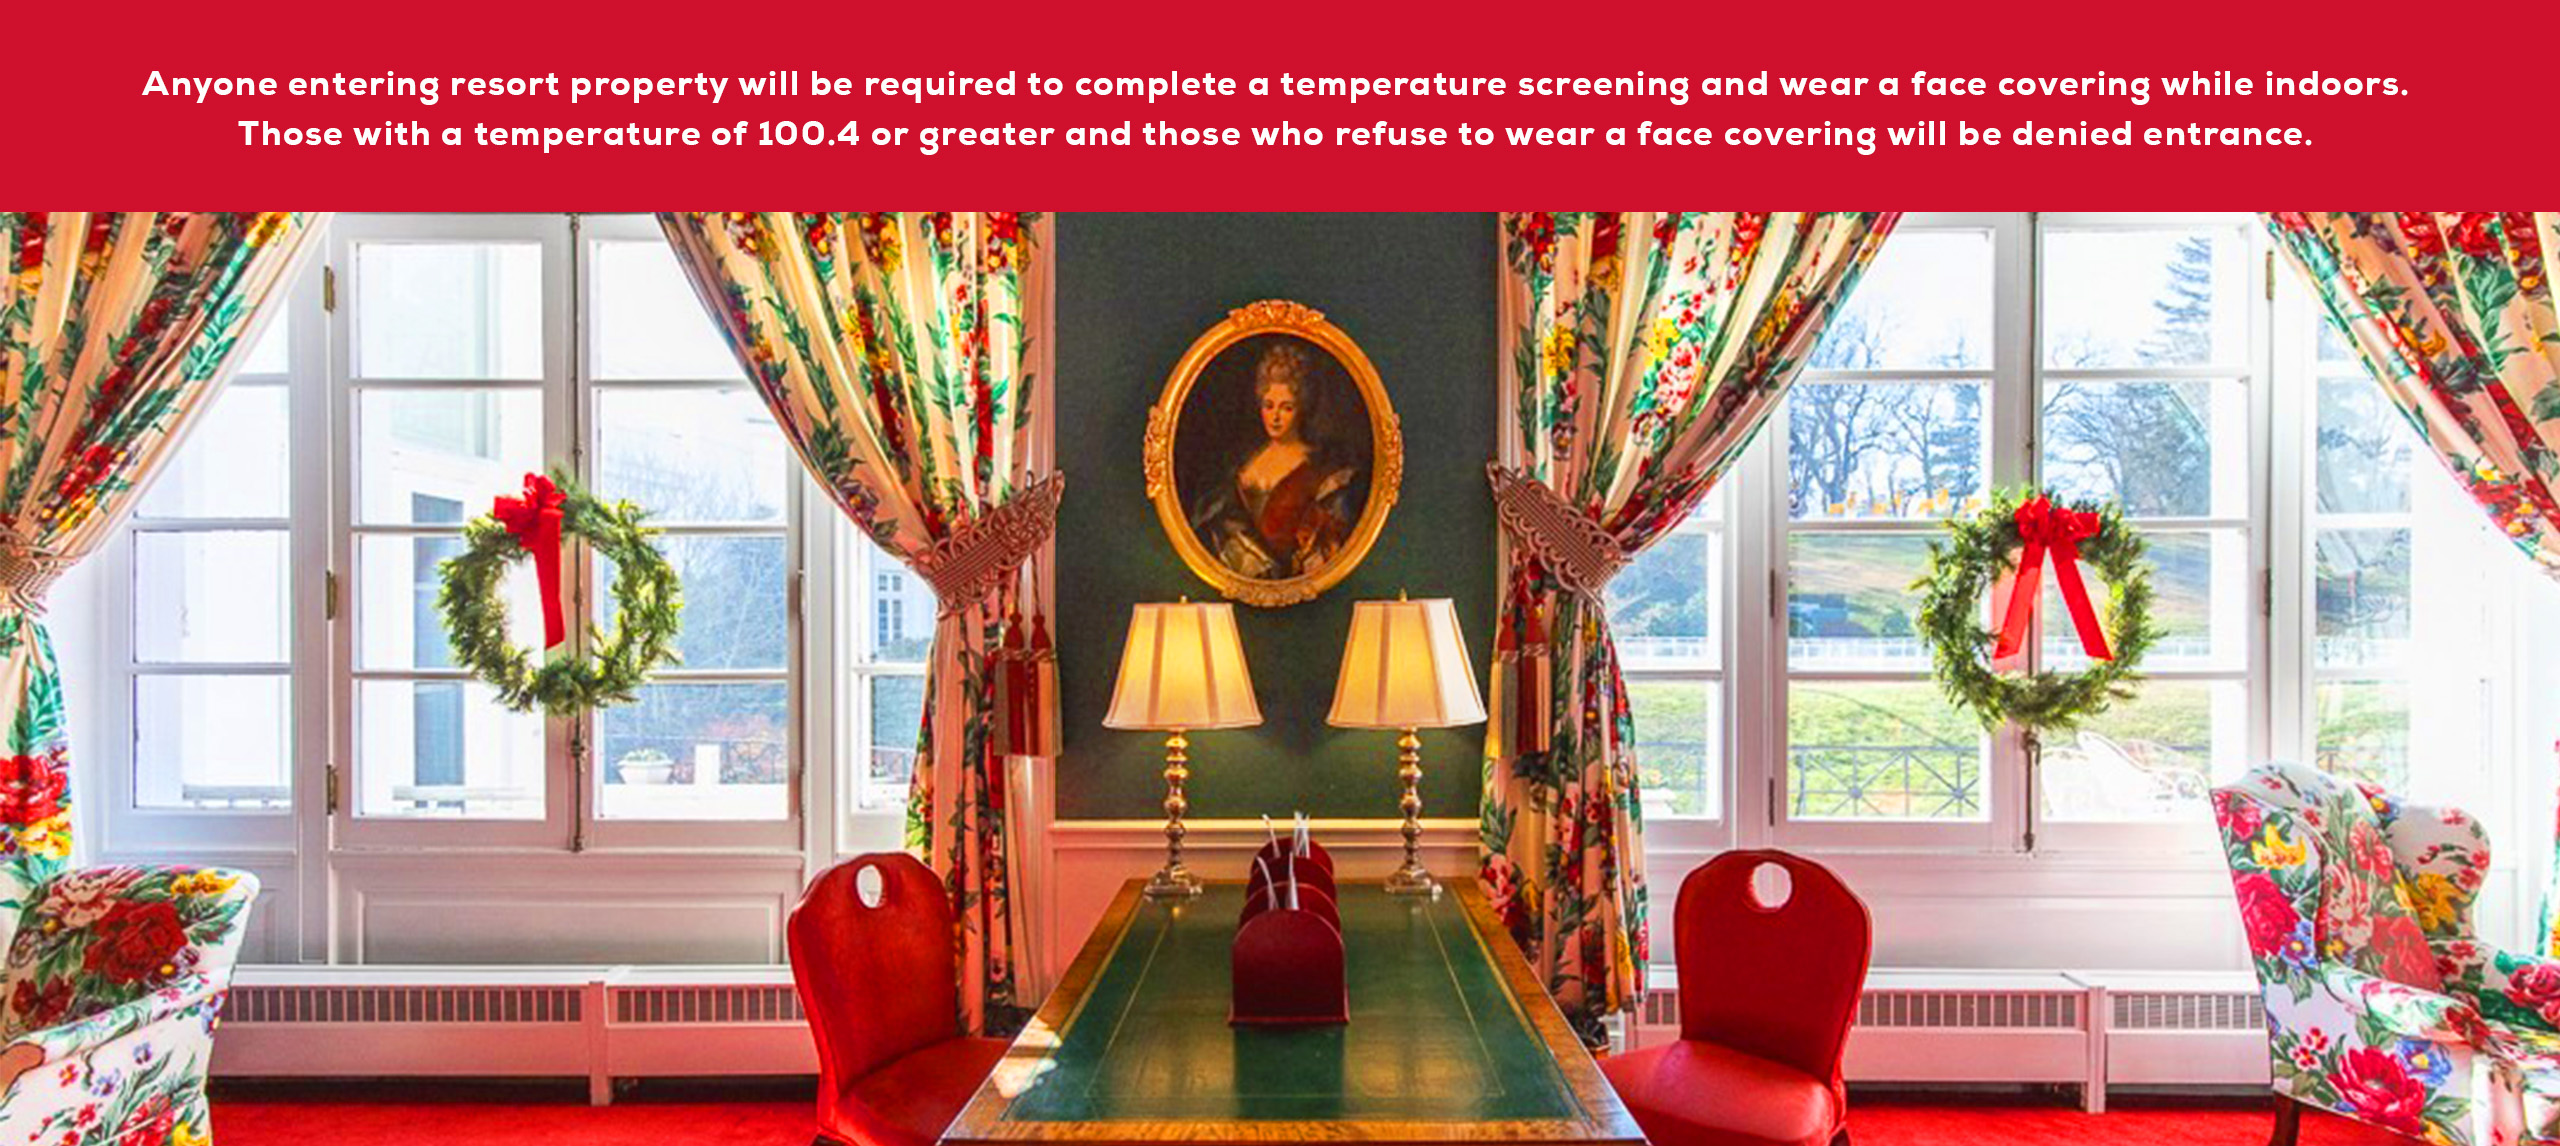 Victorian Writing Room at The Greenbrier